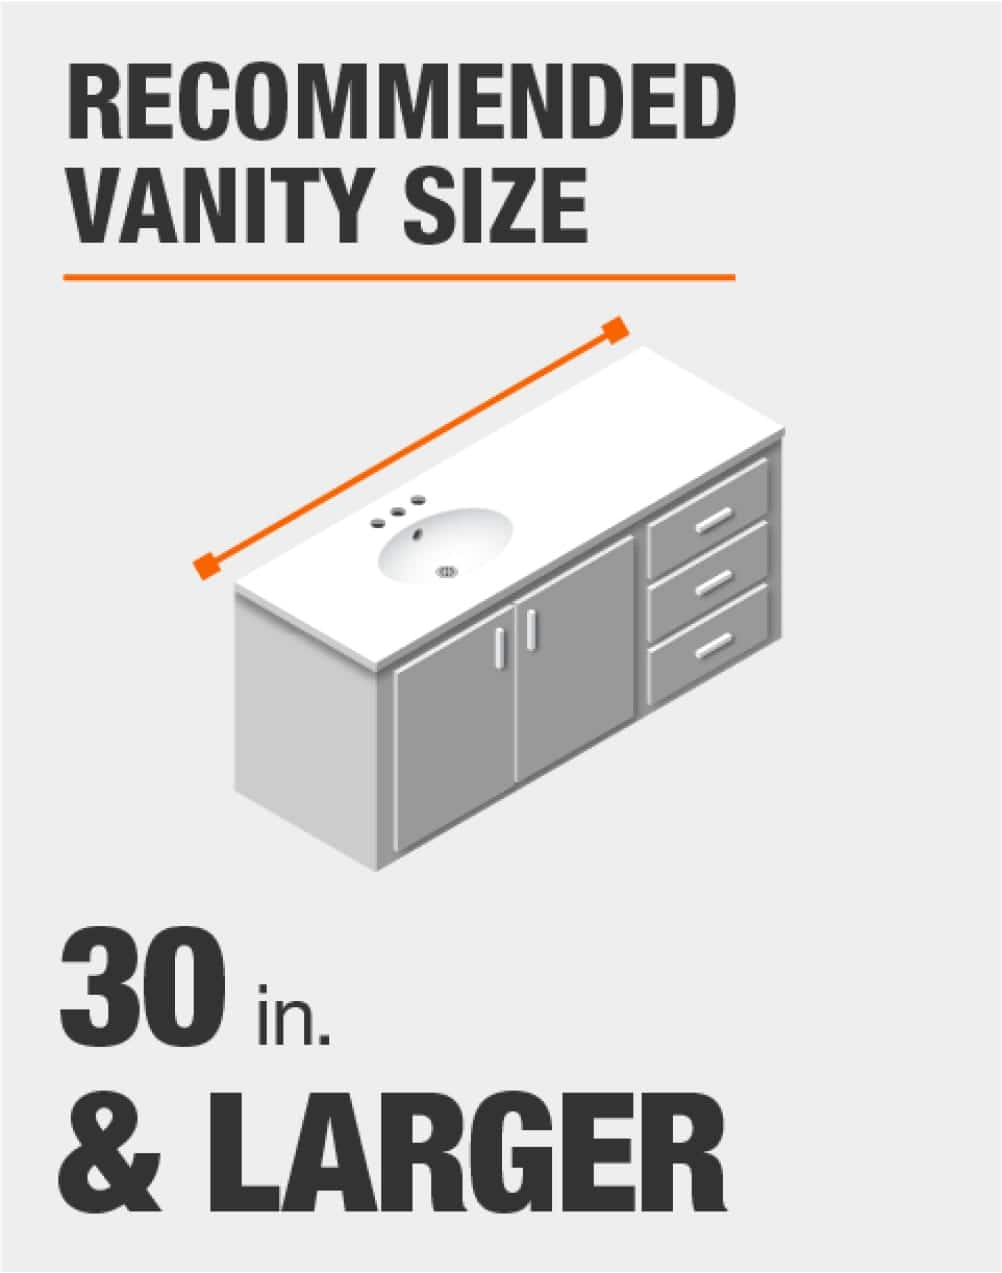 recommended vanity size of 30 inches wide and larger